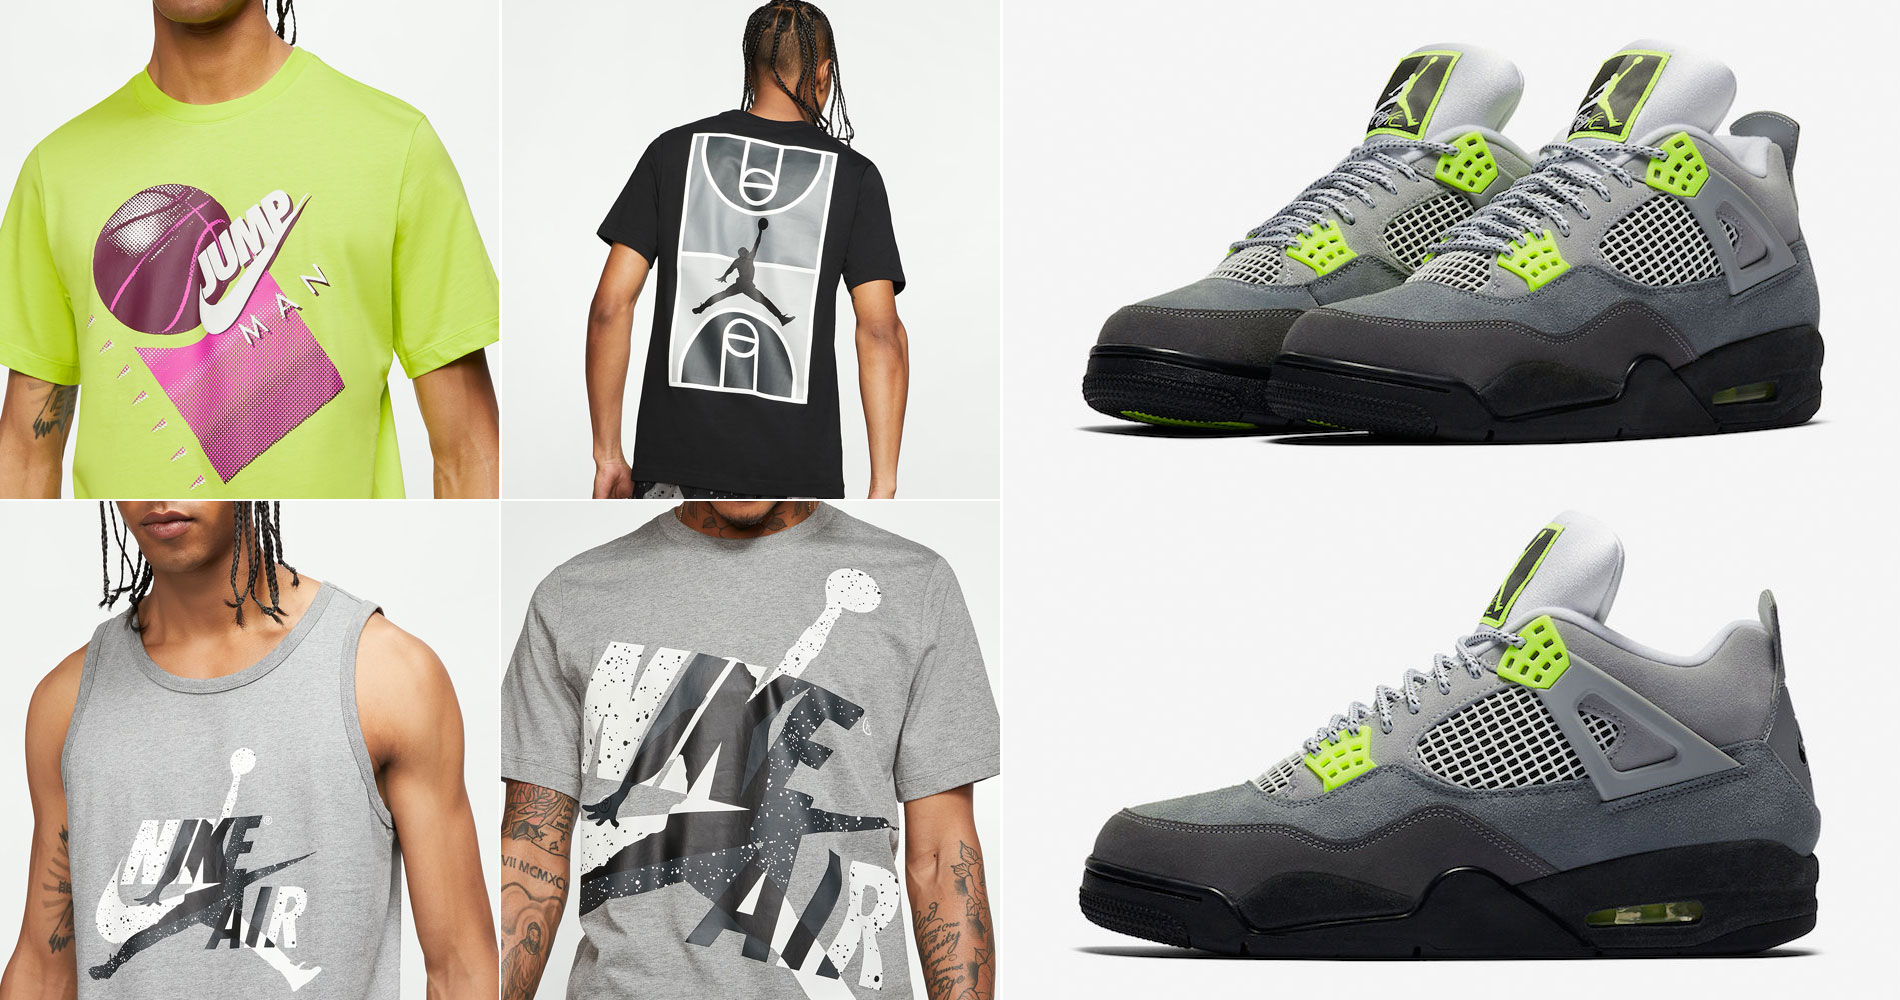 neon-air-jordan-4-air-max-95-tees-and-tank-tops